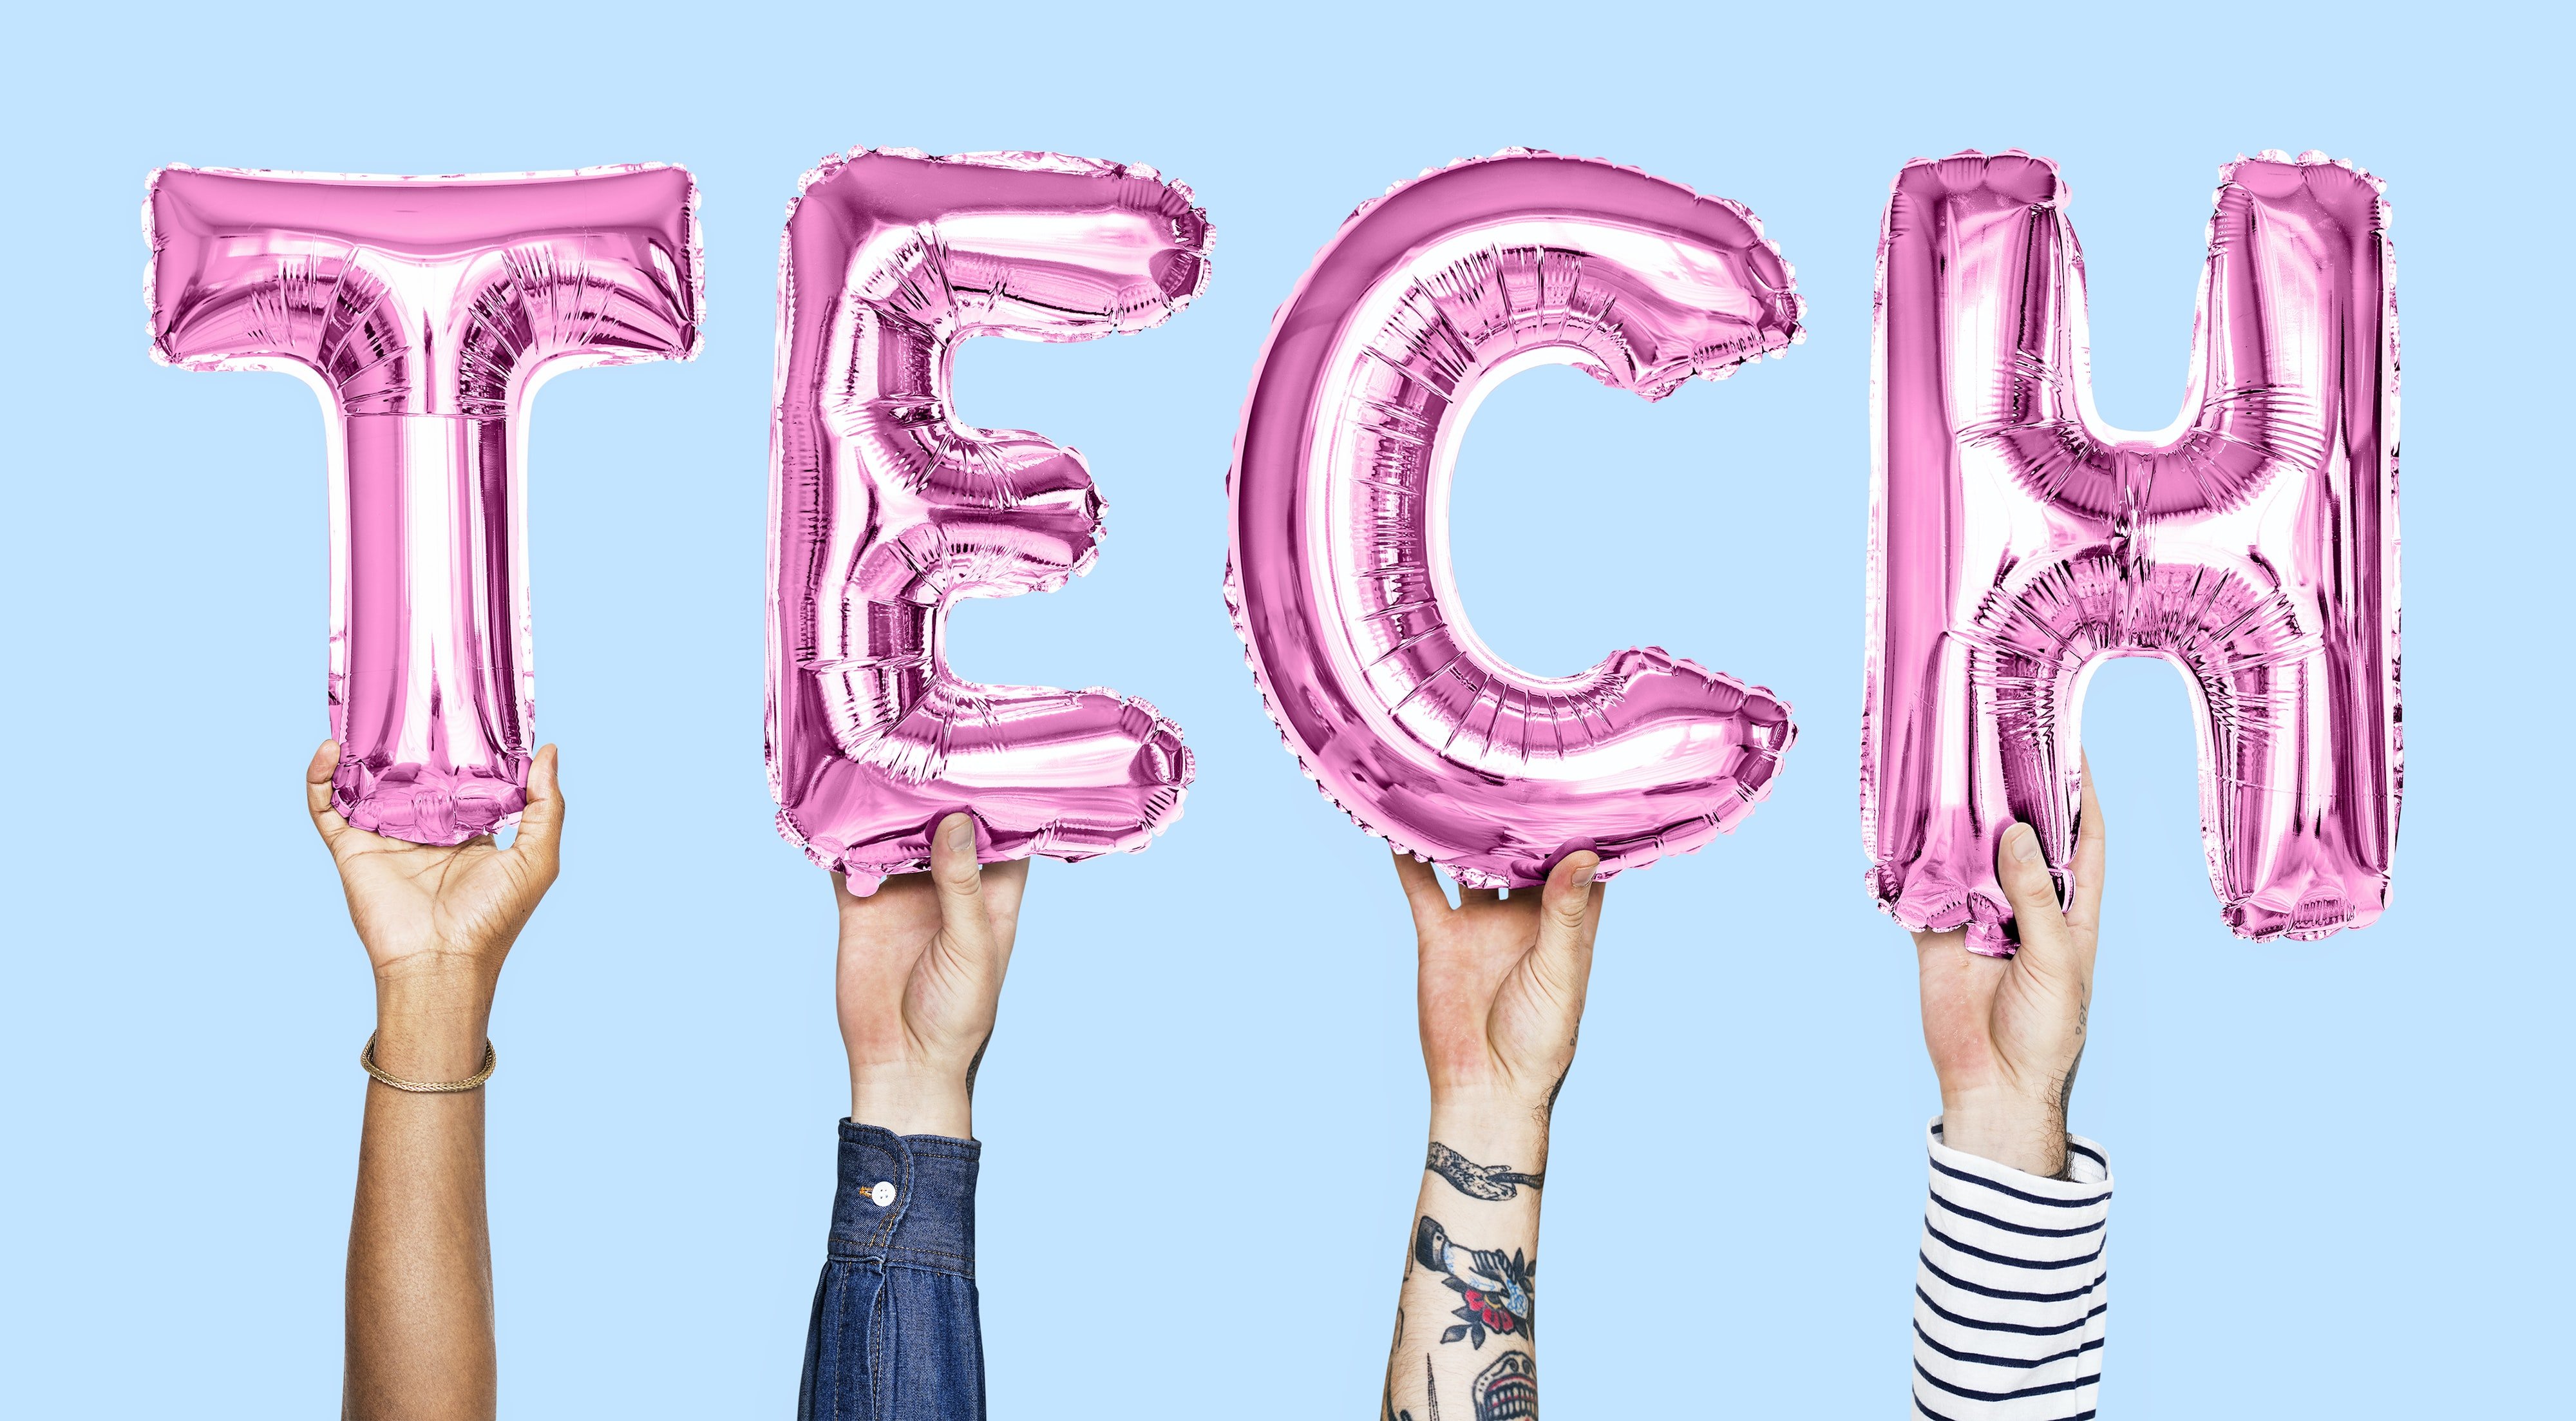 four person holding pink TECH balloons